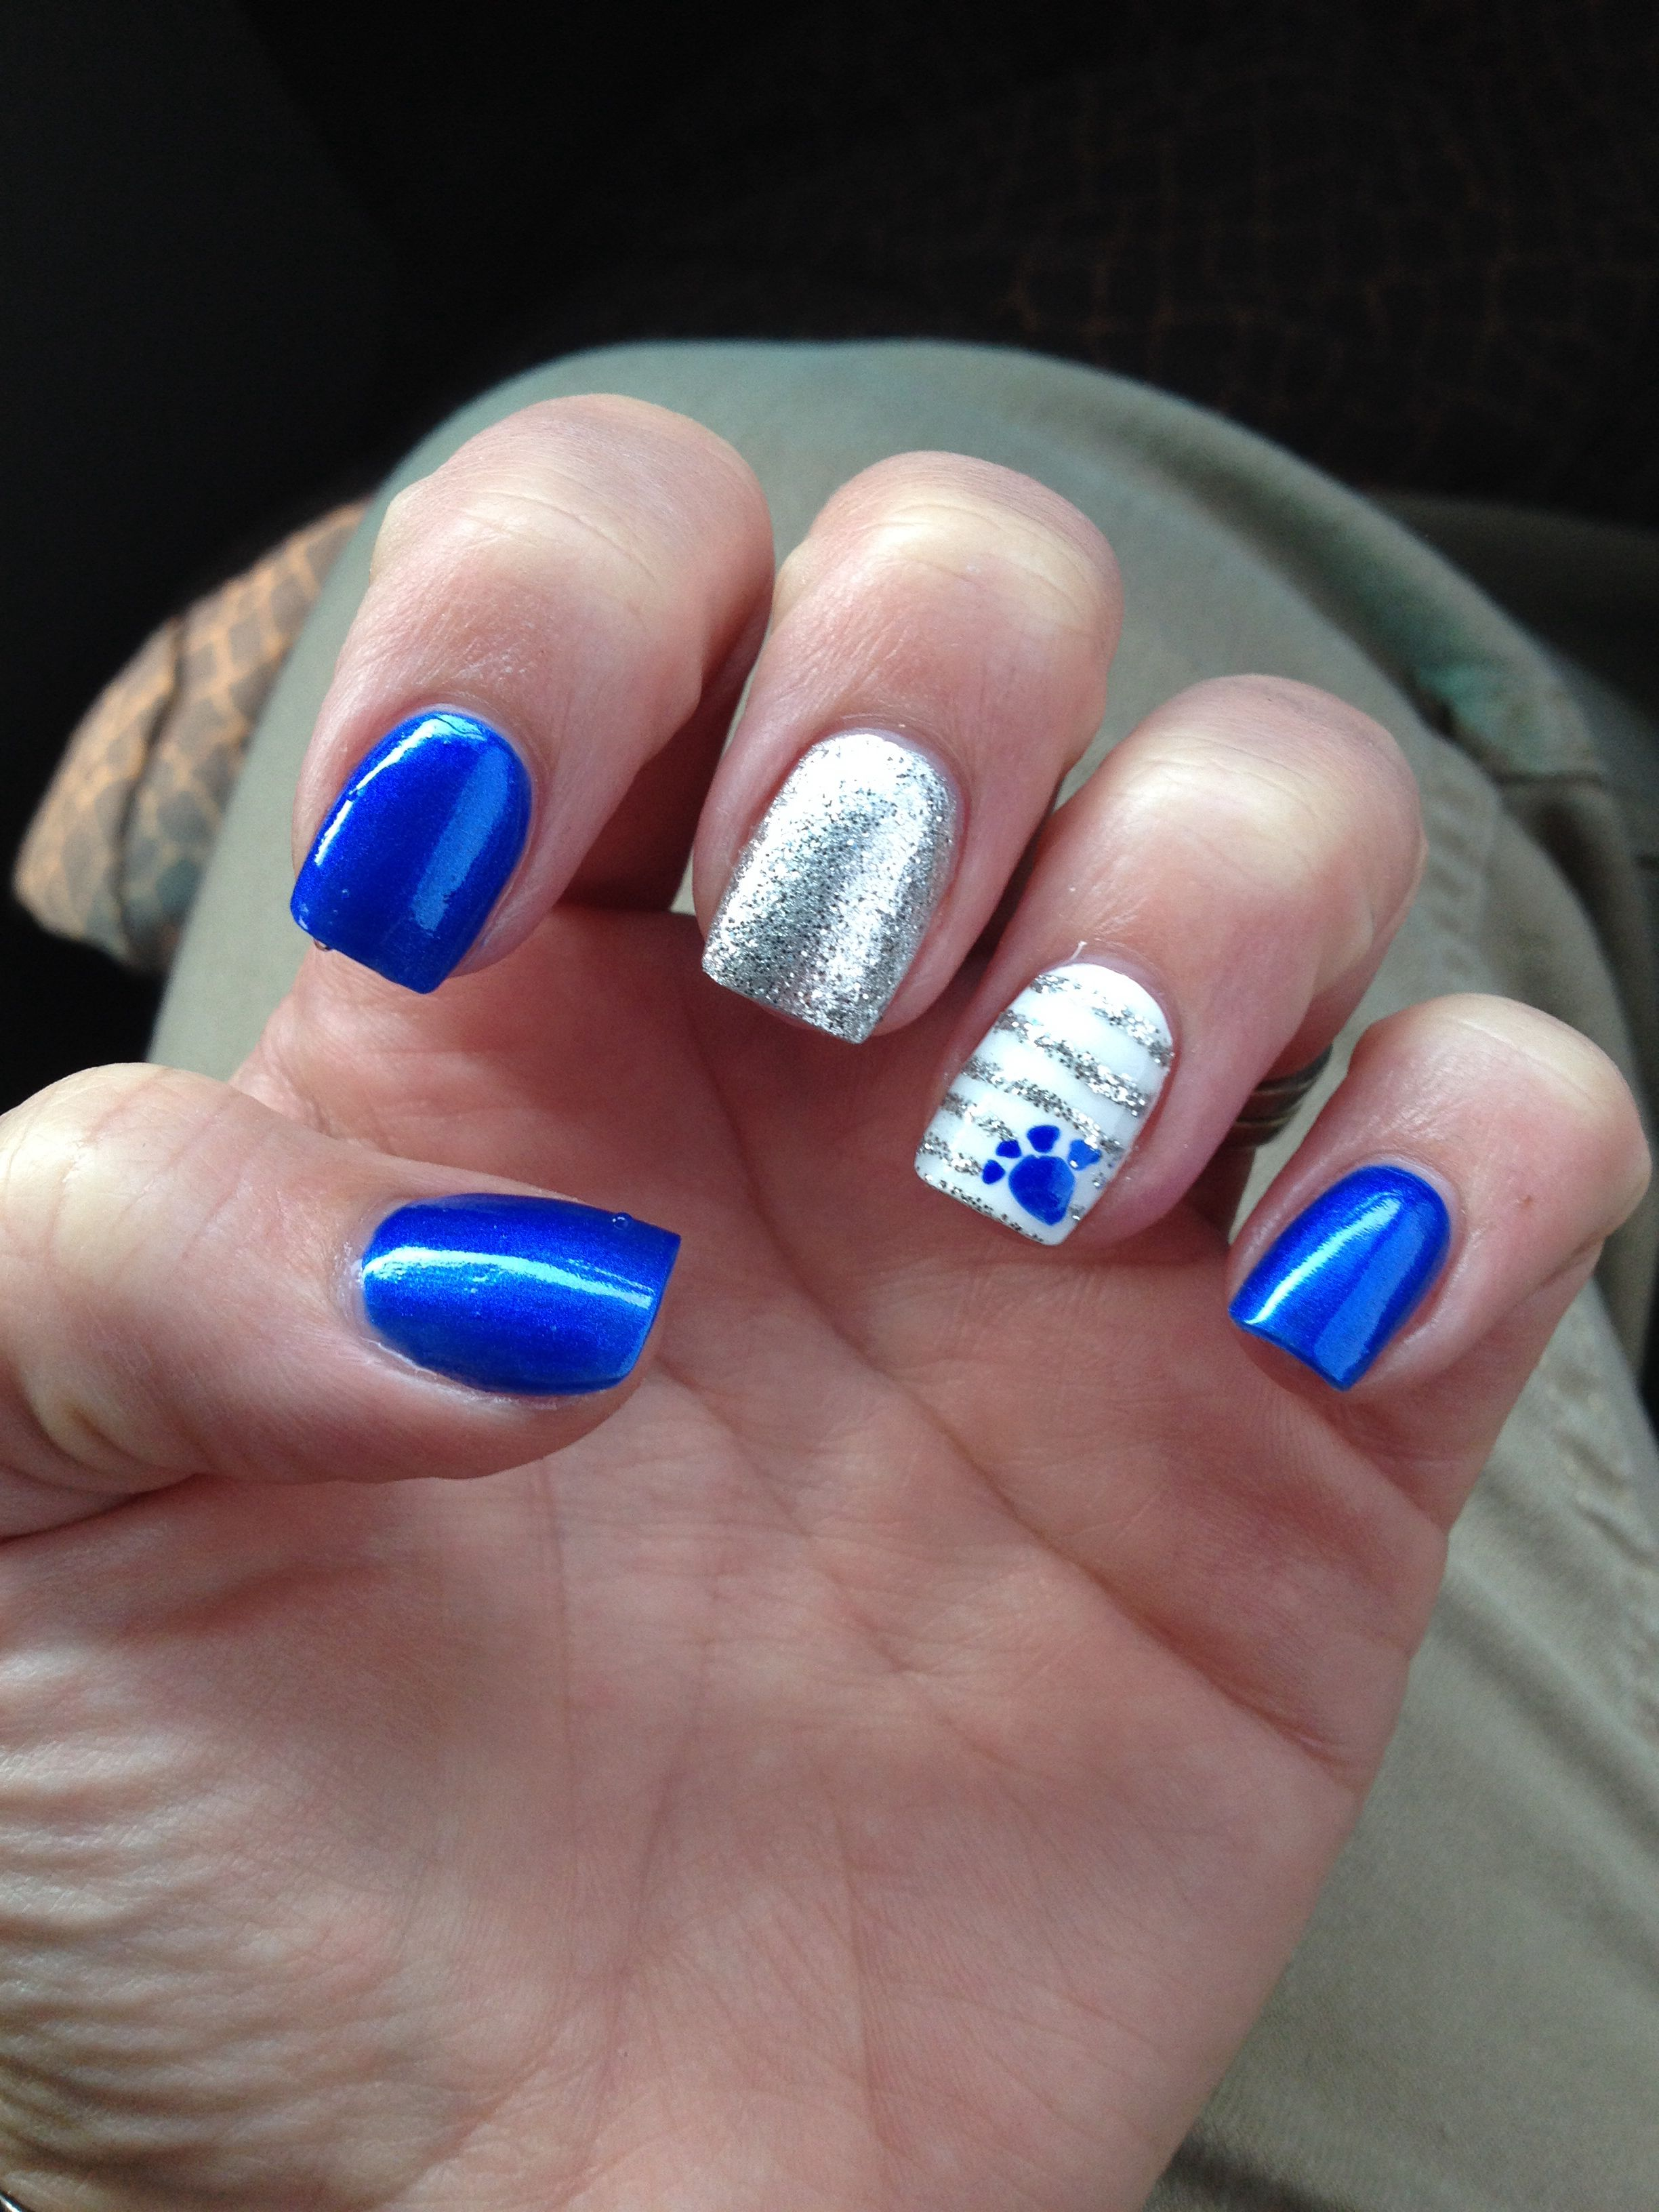 University of Kentucky Manicure | 2015 nail art | Pinterest ...